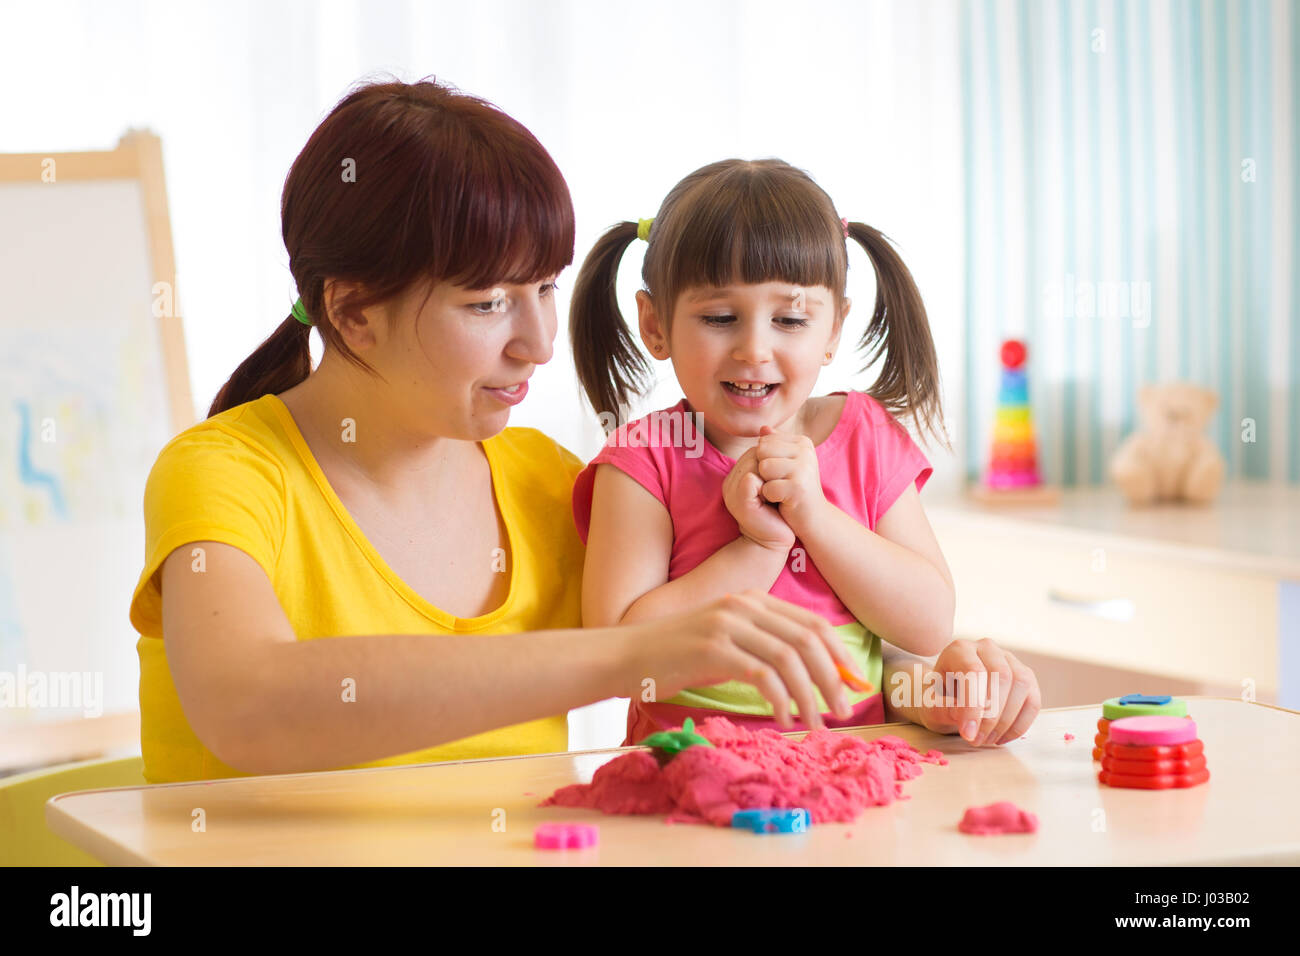 Cute child girl and mother playing with kinetic sand at home - Stock Image